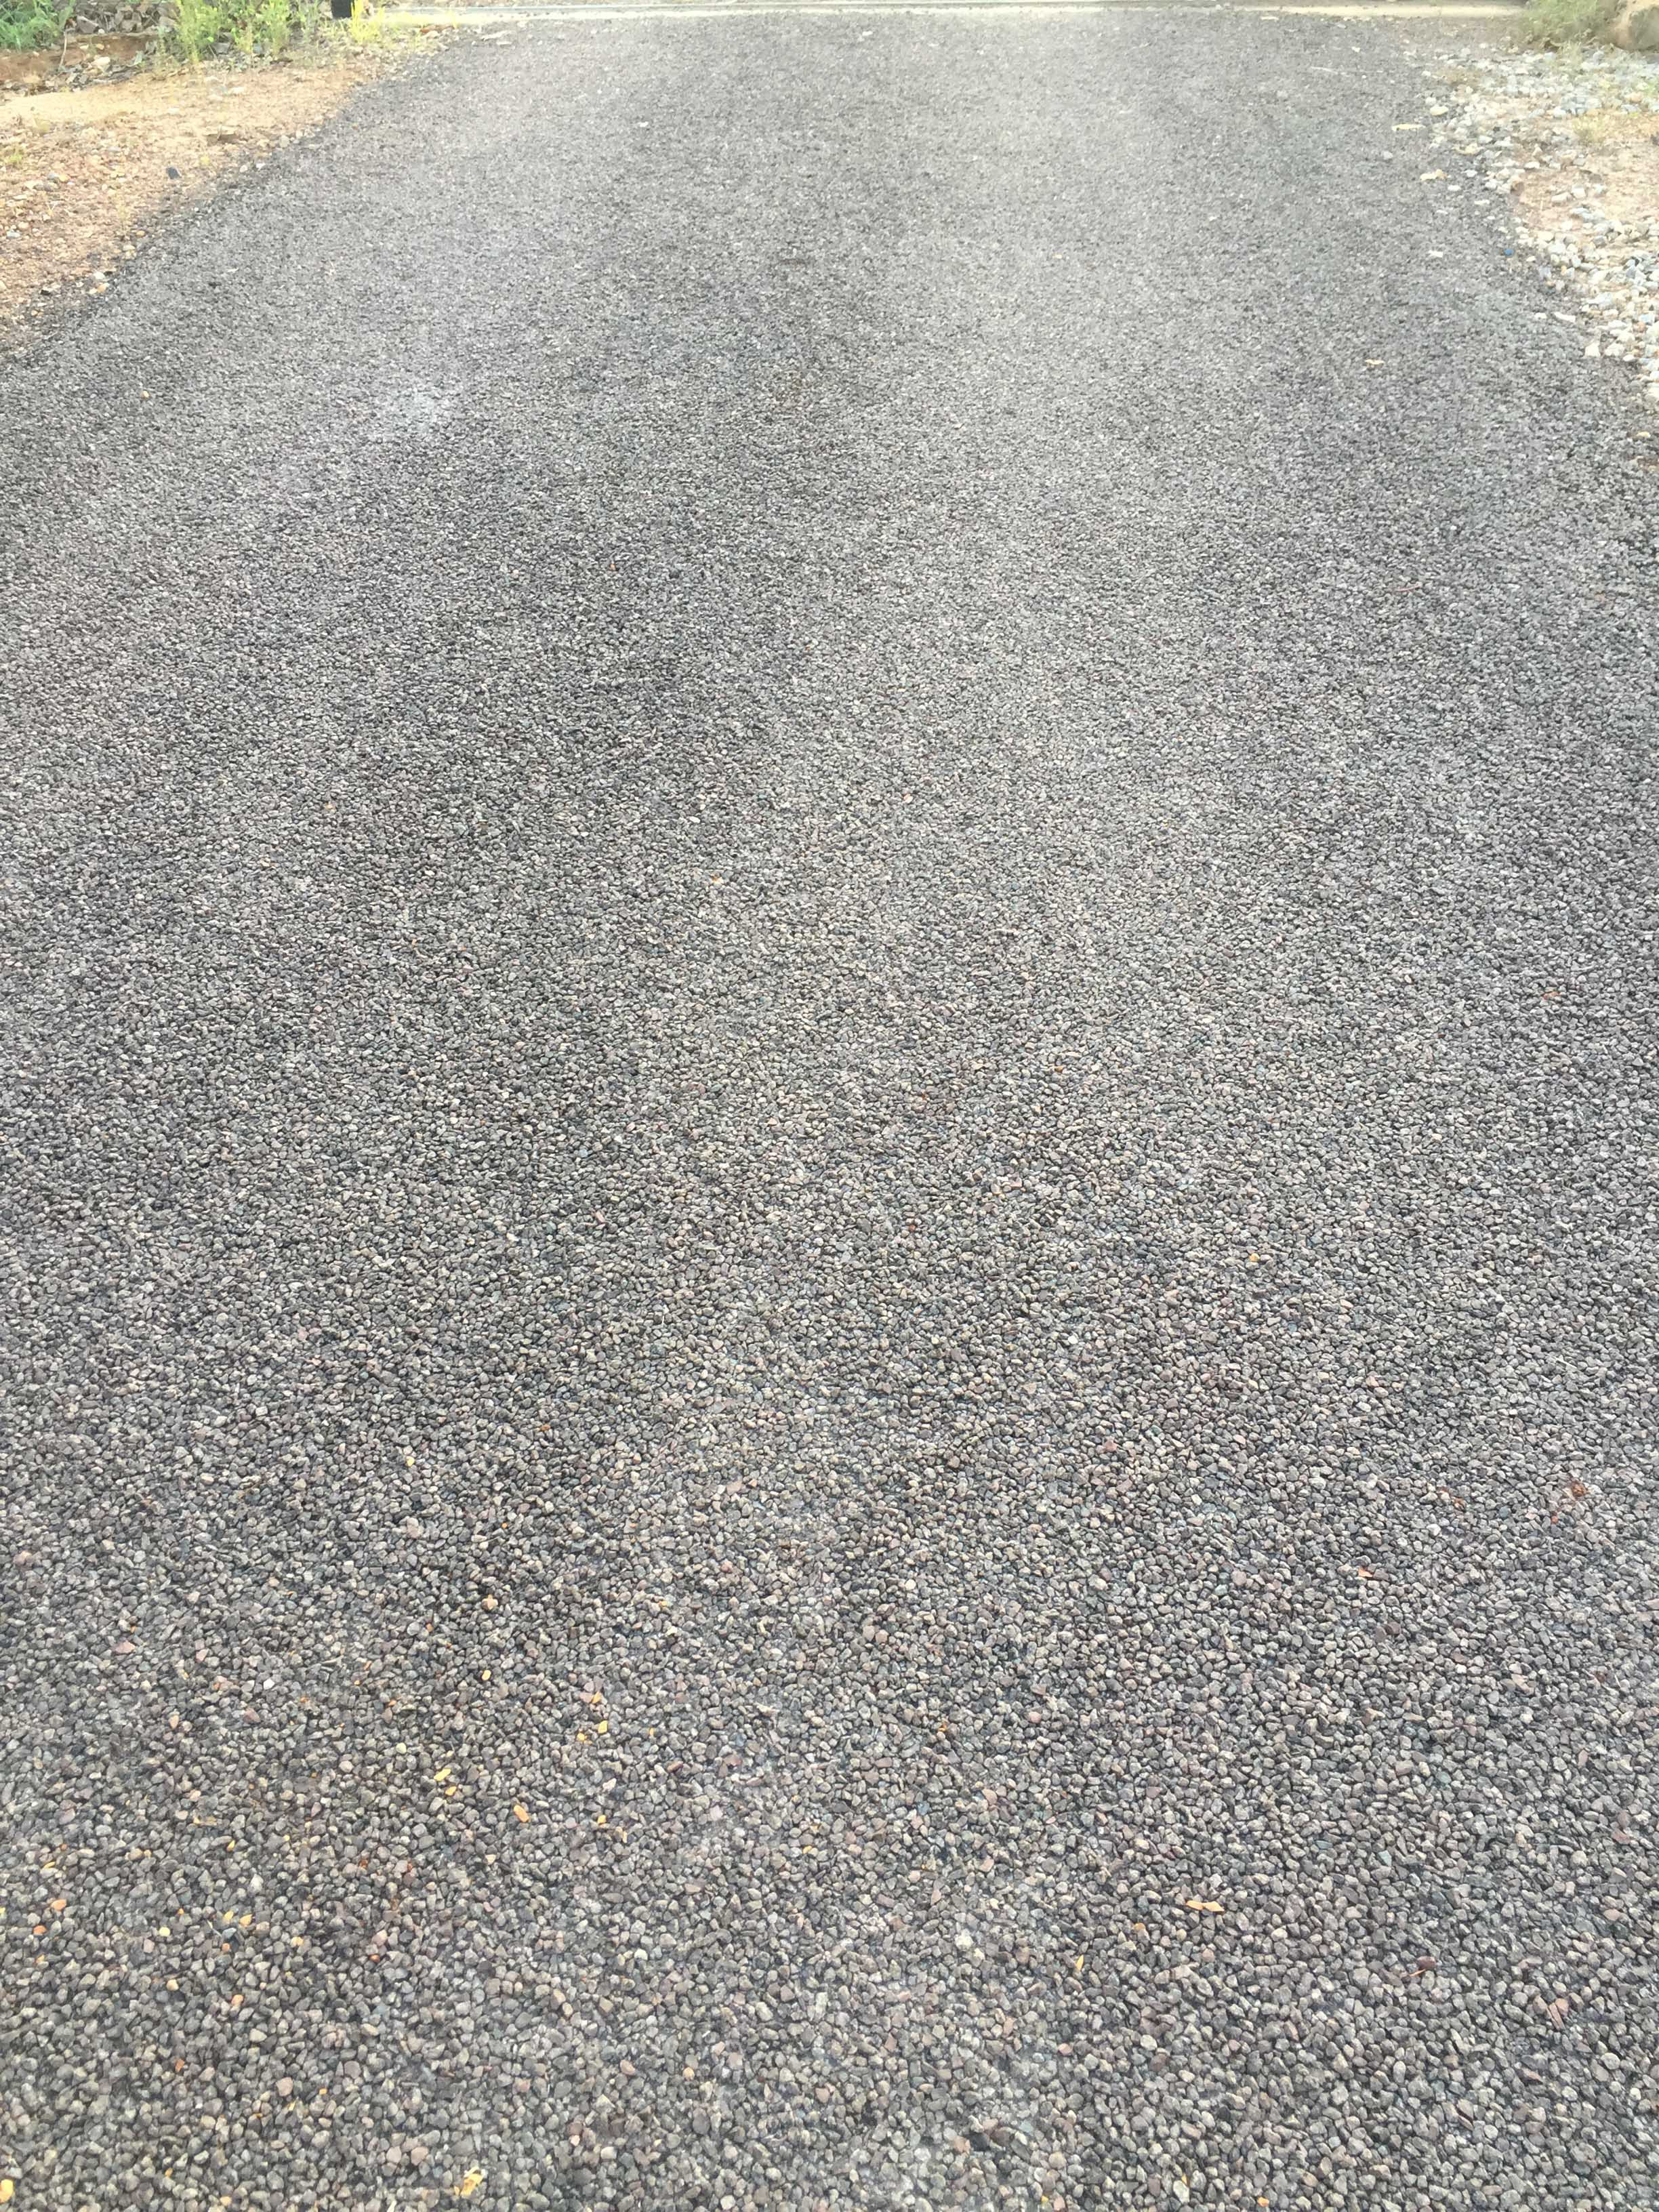 View of the road work project done by experts